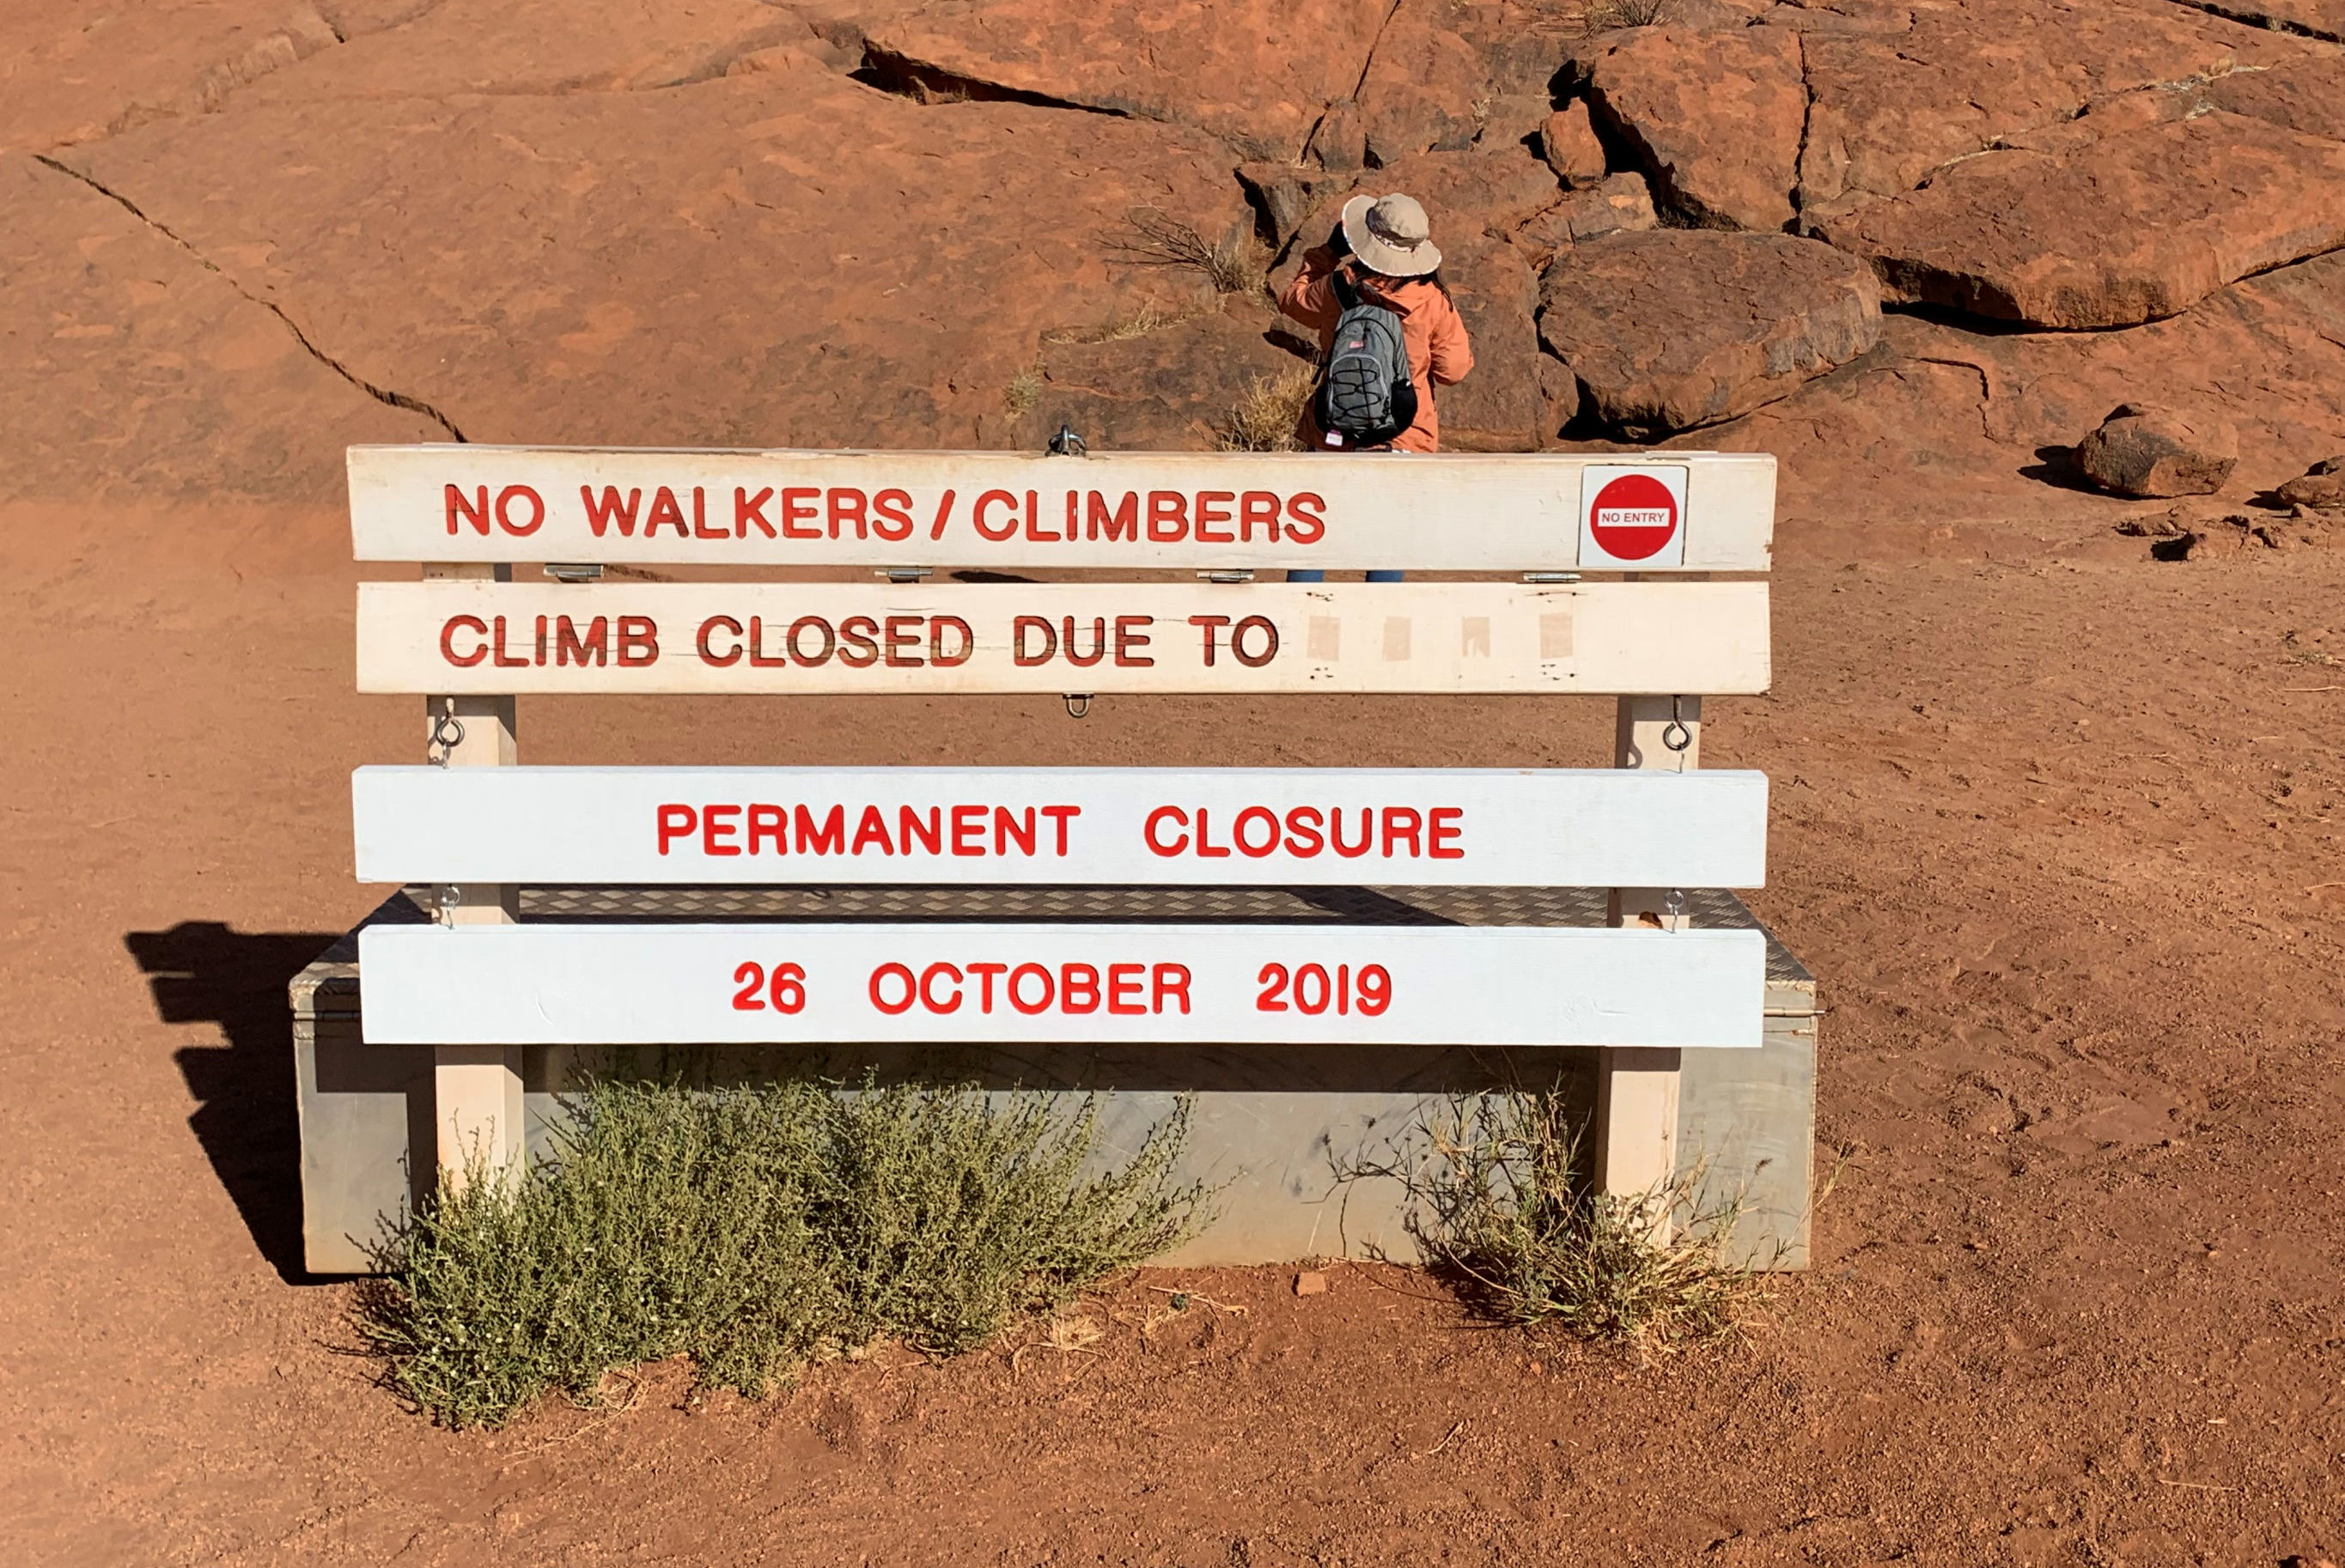 A new permanent closure sign is installed at Uluru, formerly known as Ayers Rock, the day before a permanent ban on climbing the monolith takes effect following a decades-long fight by indigenous people to close the trek, near Yulara, Australia